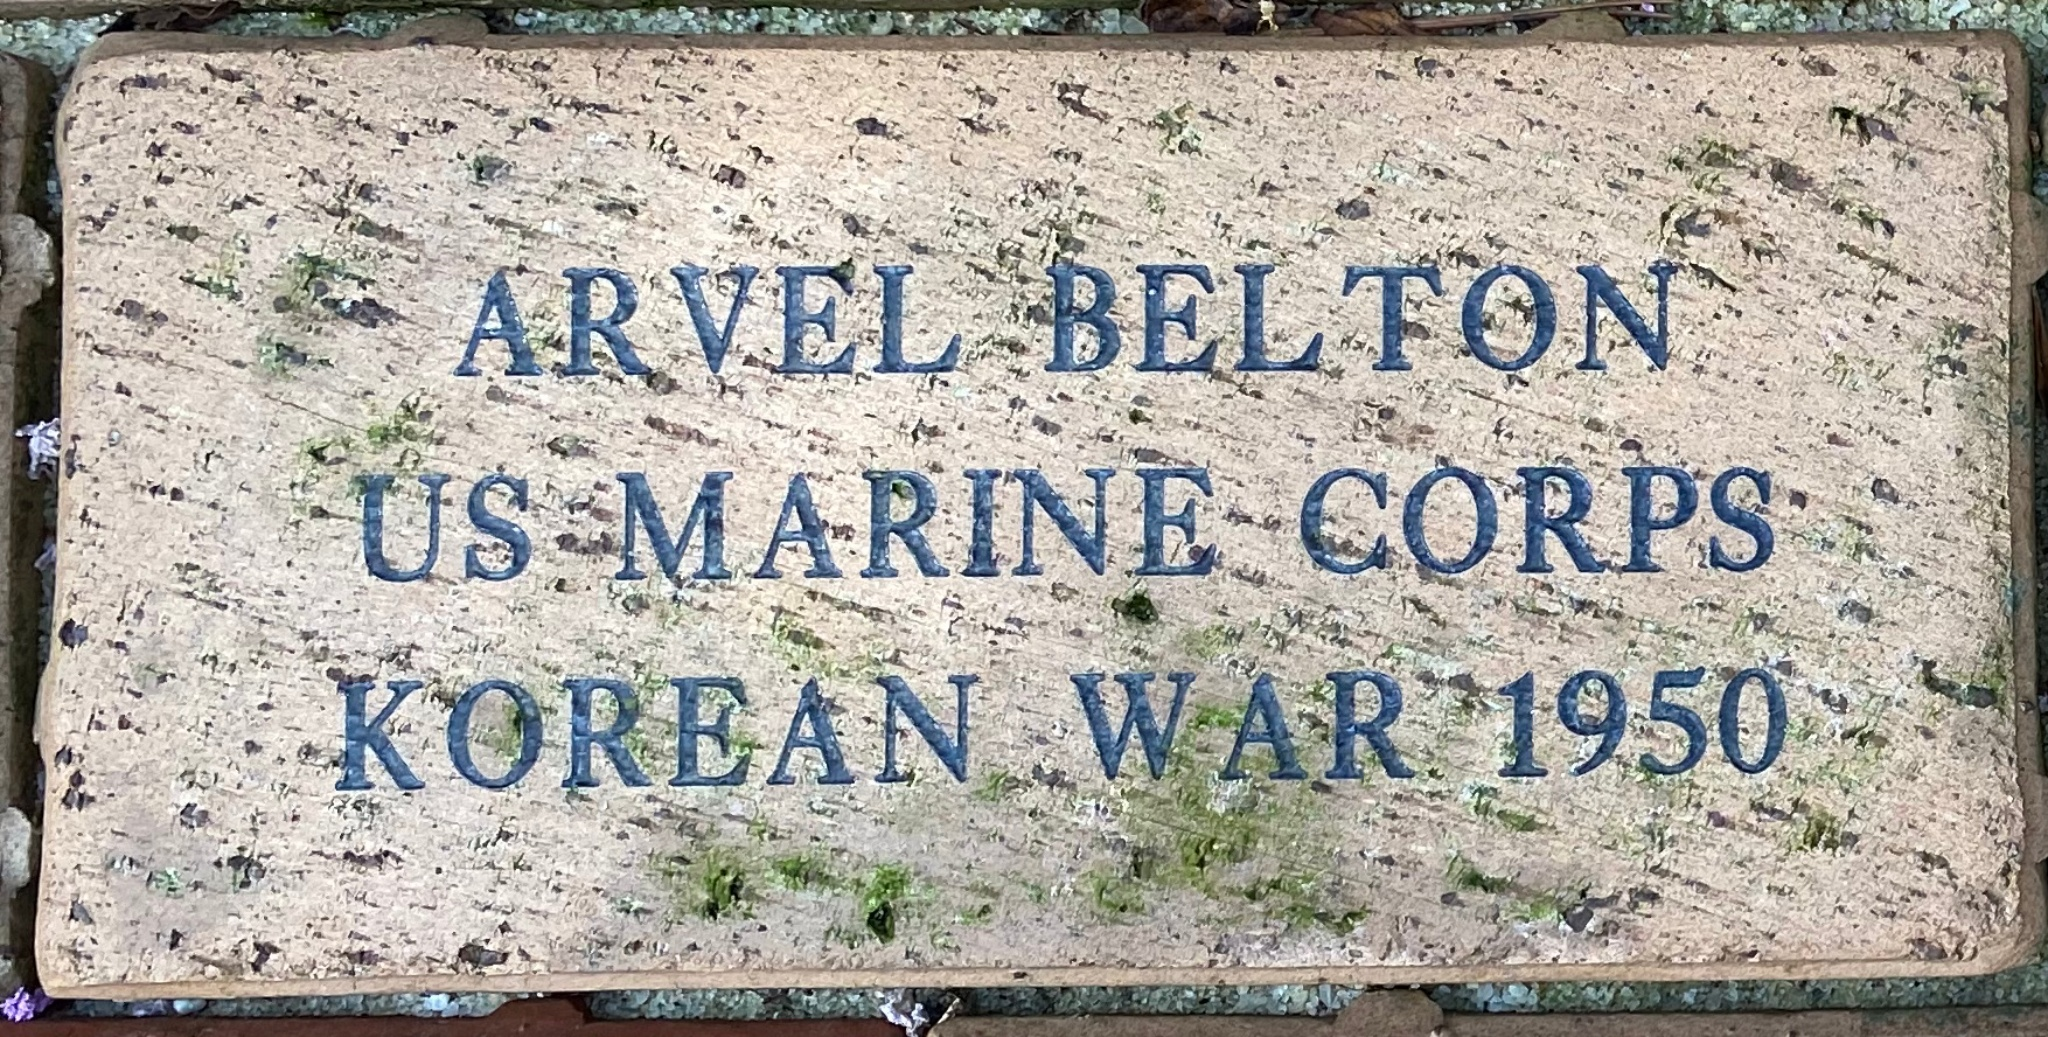 ARVEL BELTON US MARINE CORPS KOREAN WAR 1950